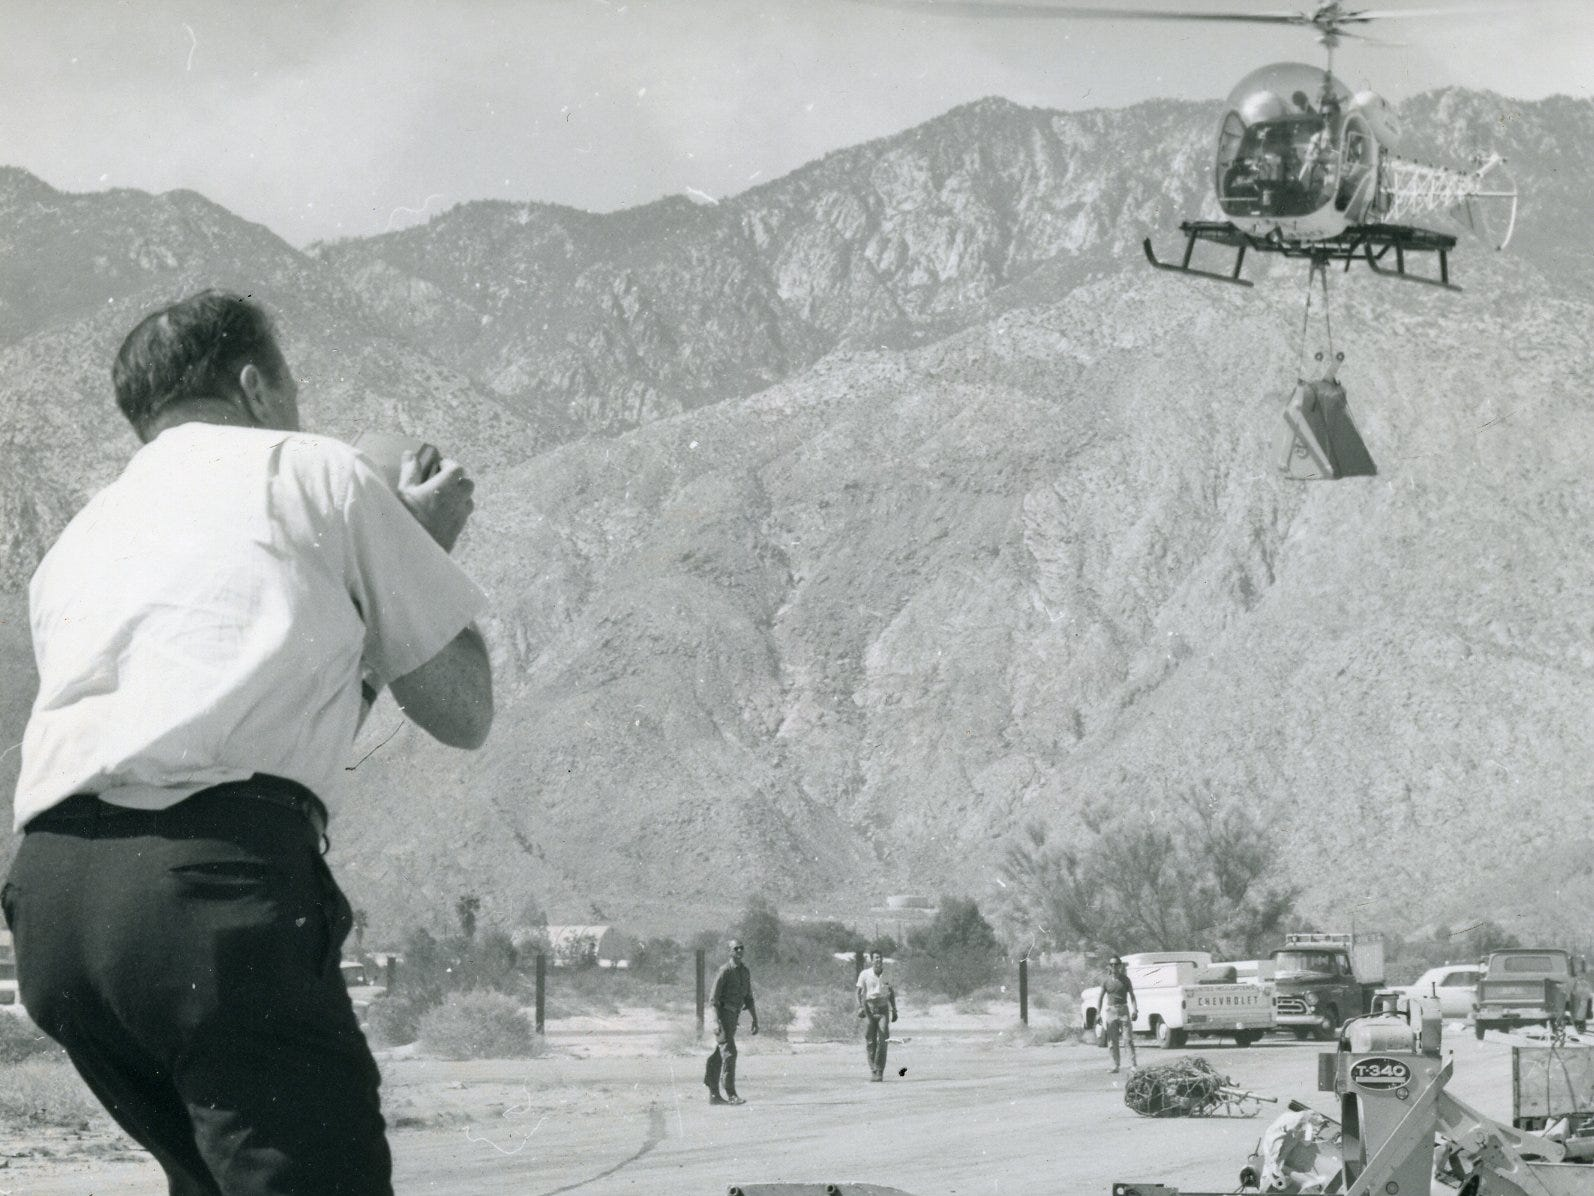 Supplies to build the tram station were brought in by helicopter in this undated Palm Springs Aerial Tram photo.